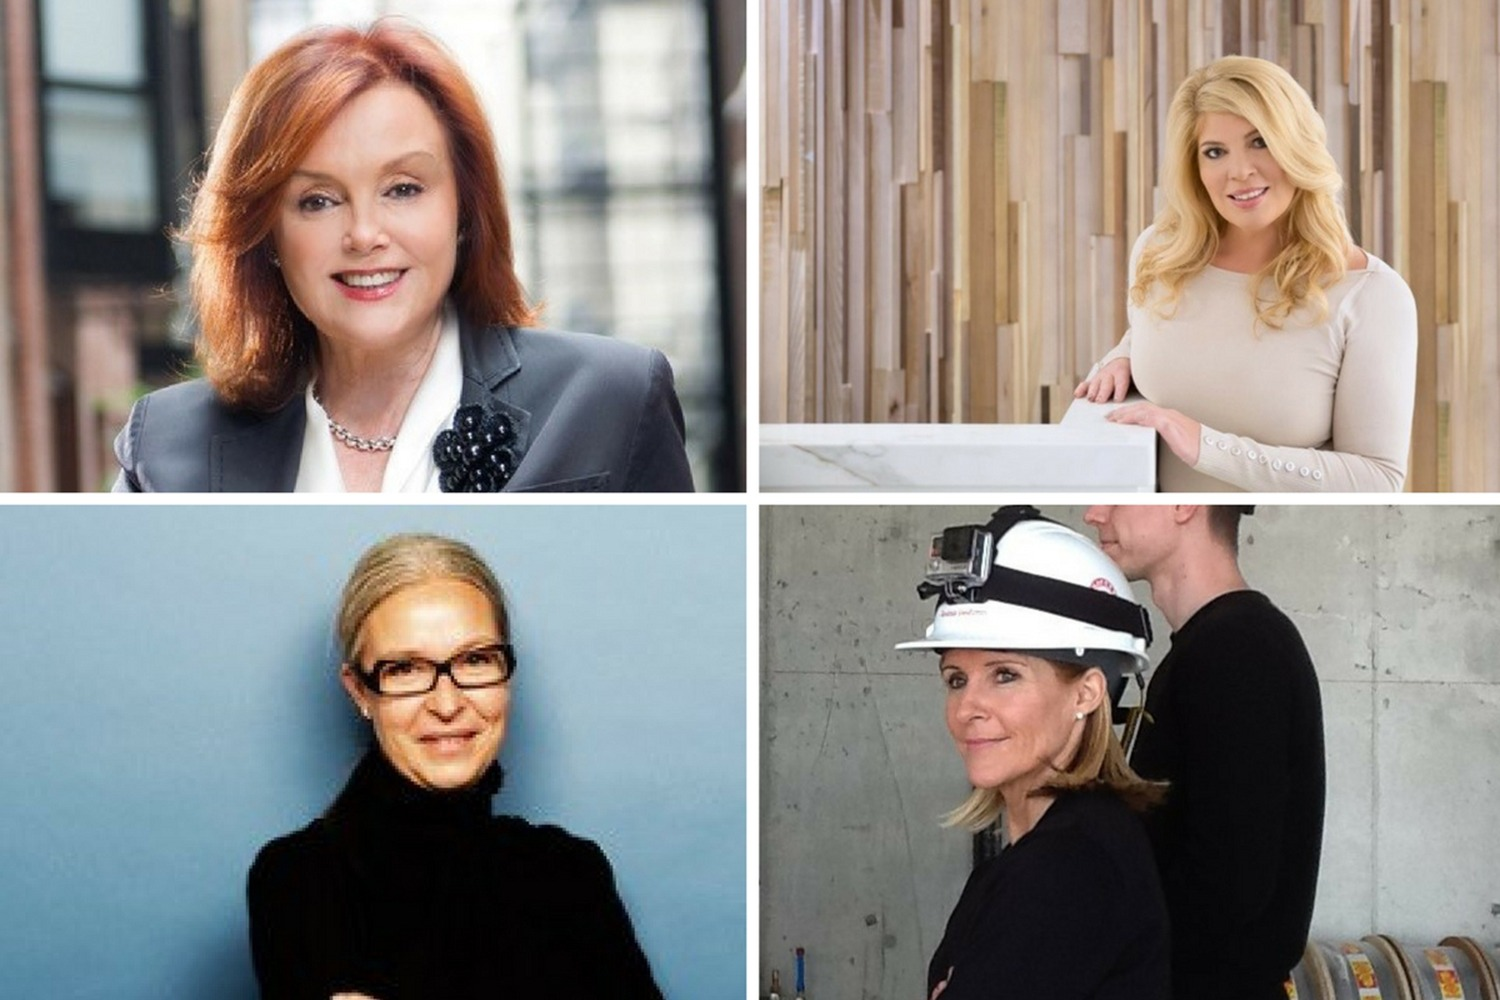 In recognition of International Women's Day, Toronto Storeys interviewed five major players in the city's real estate sector, to hear about their tremendous achievements, their words of advice, and who has inspired them in work and life. Clockwise from top left is Barbara Lawlor, Susan McIntee, Andrea DelZotto and Heather Rolleston. Not pictured is Julie Di Lorenzo.